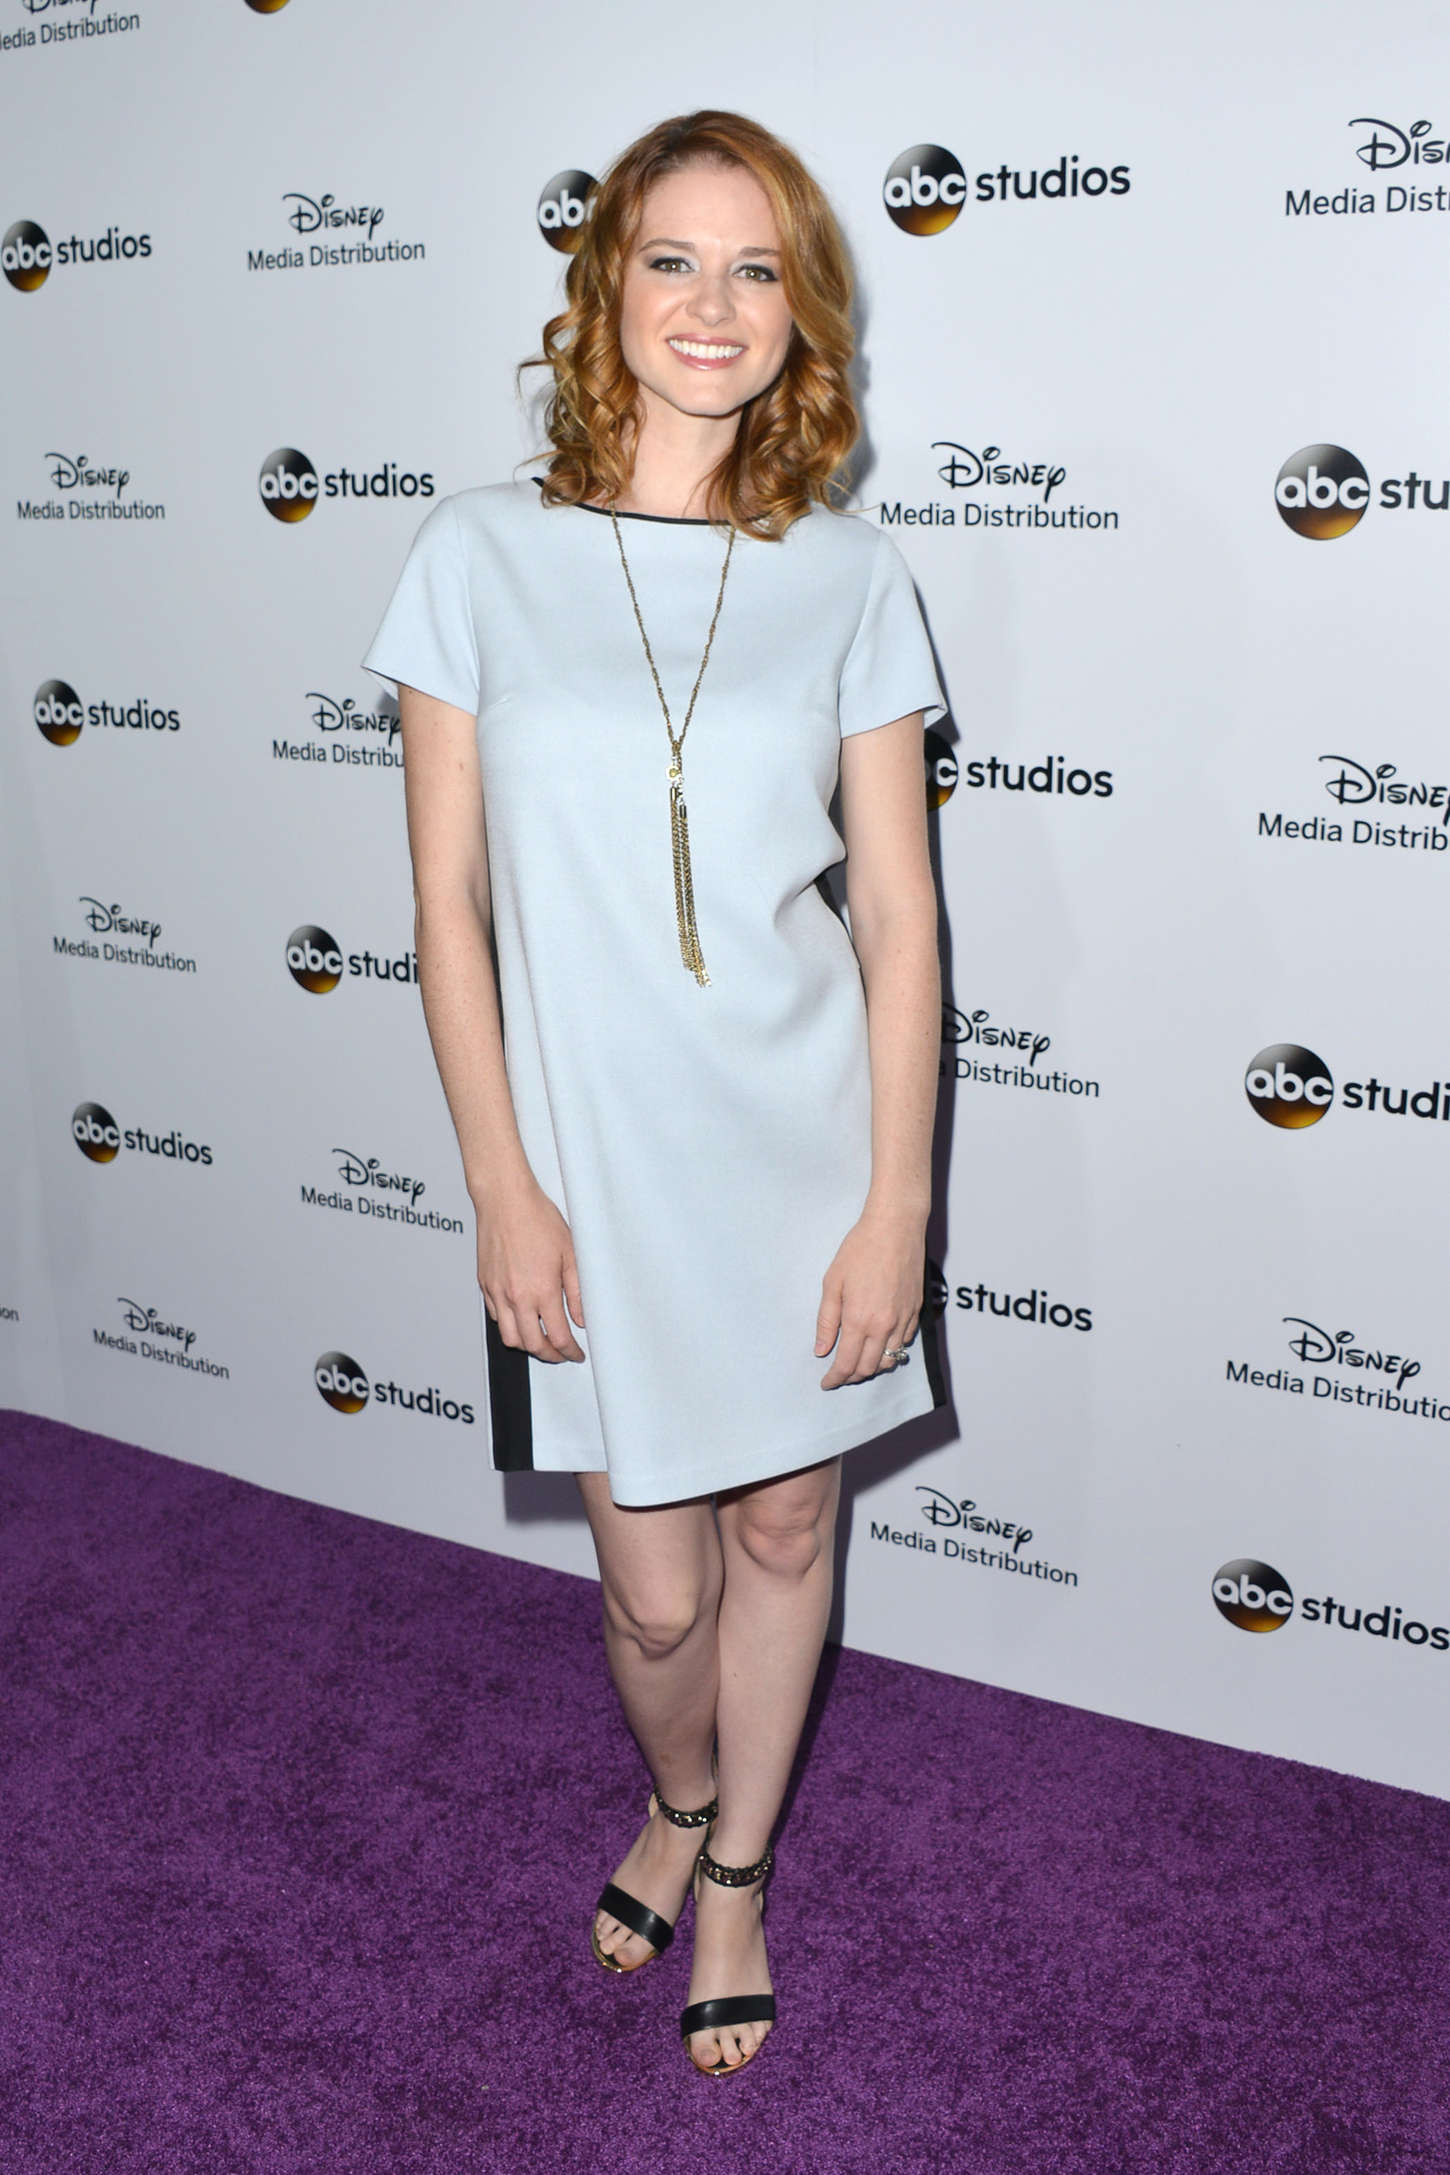 Sarah Drew Disney Media Distribution International Upfront in Burbank